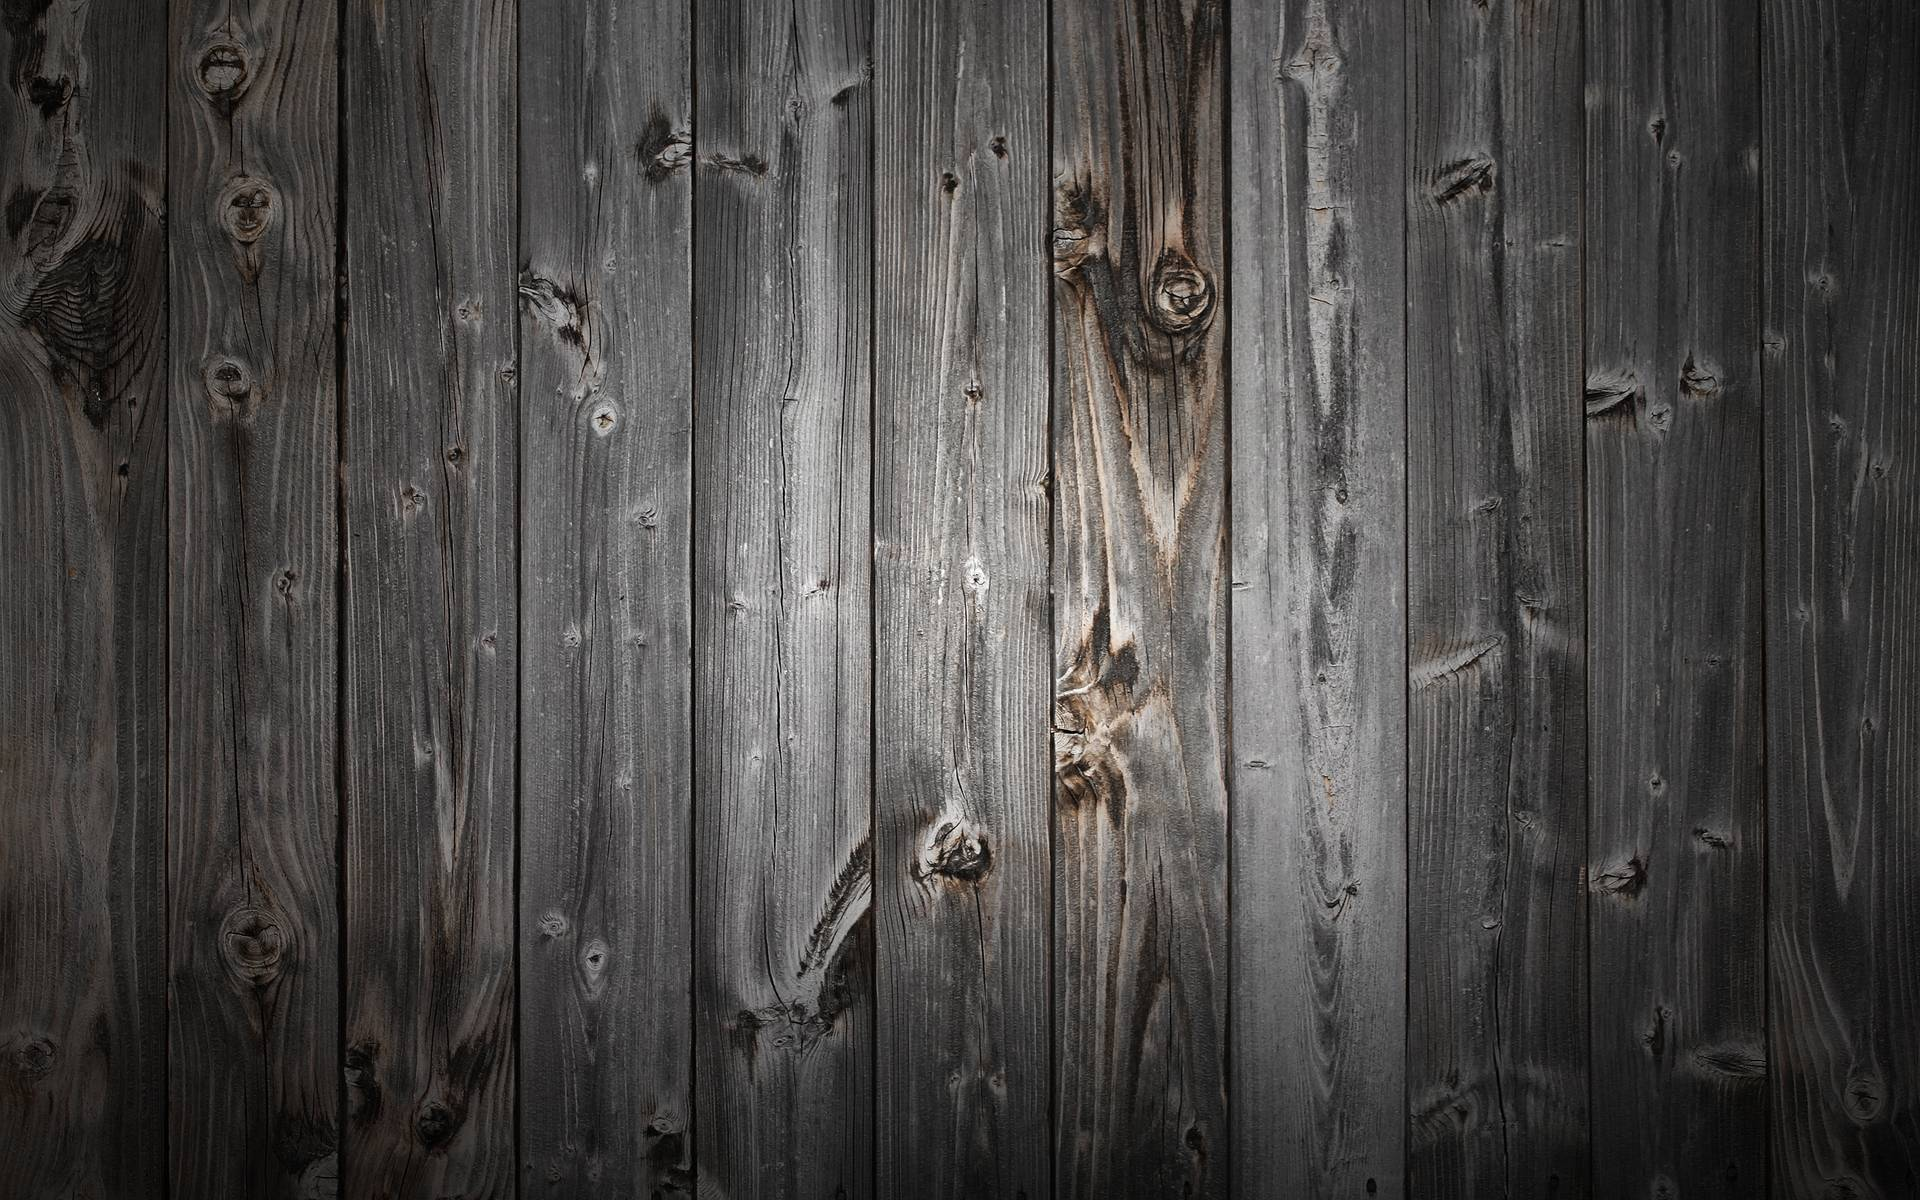 40 Stunning Wood Backgrounds   TrickVilla. HD Wood Backgrounds   Wallpaper Cave